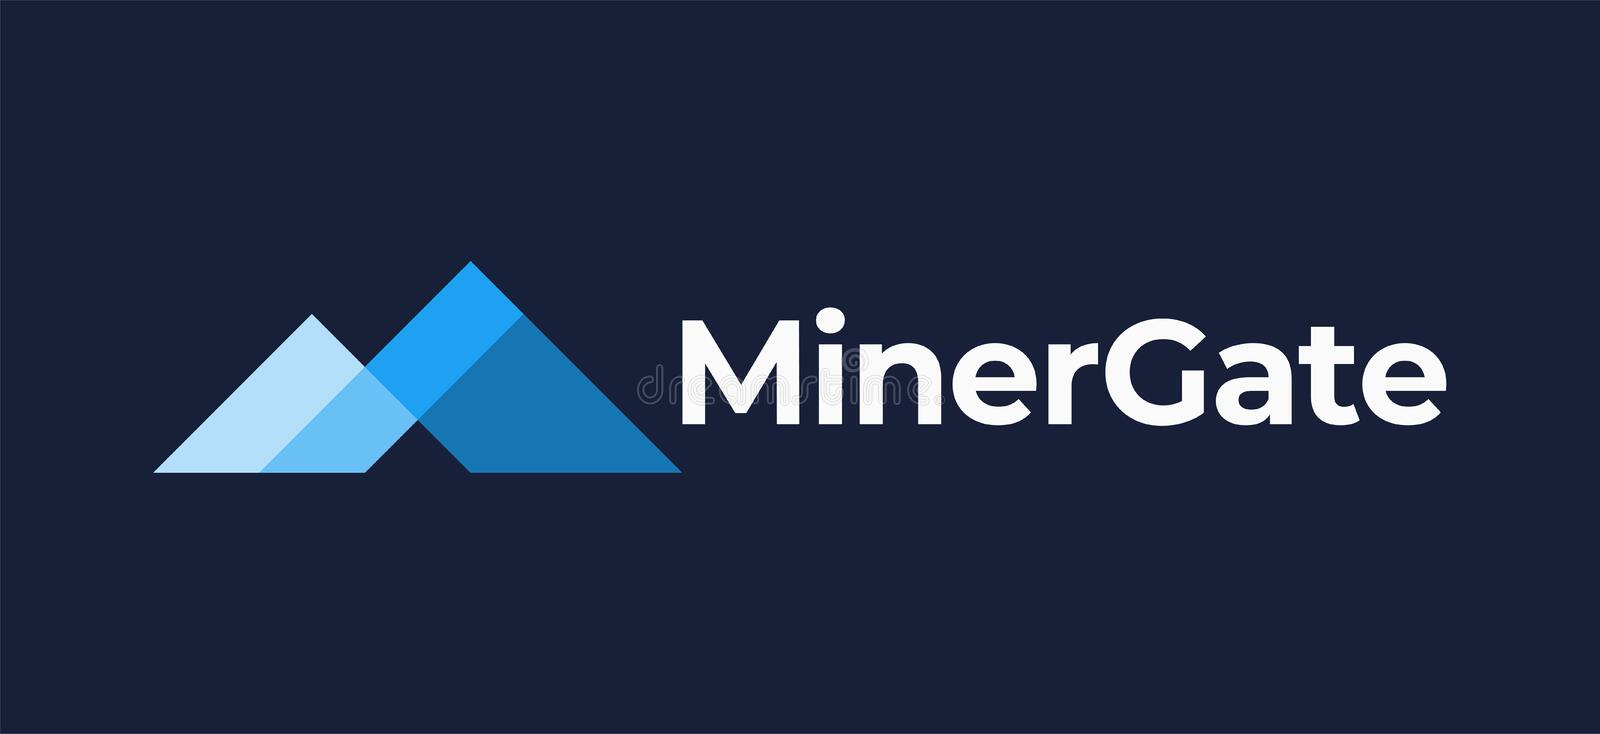 Icono del cryptocurrency de Minergate libre illustration